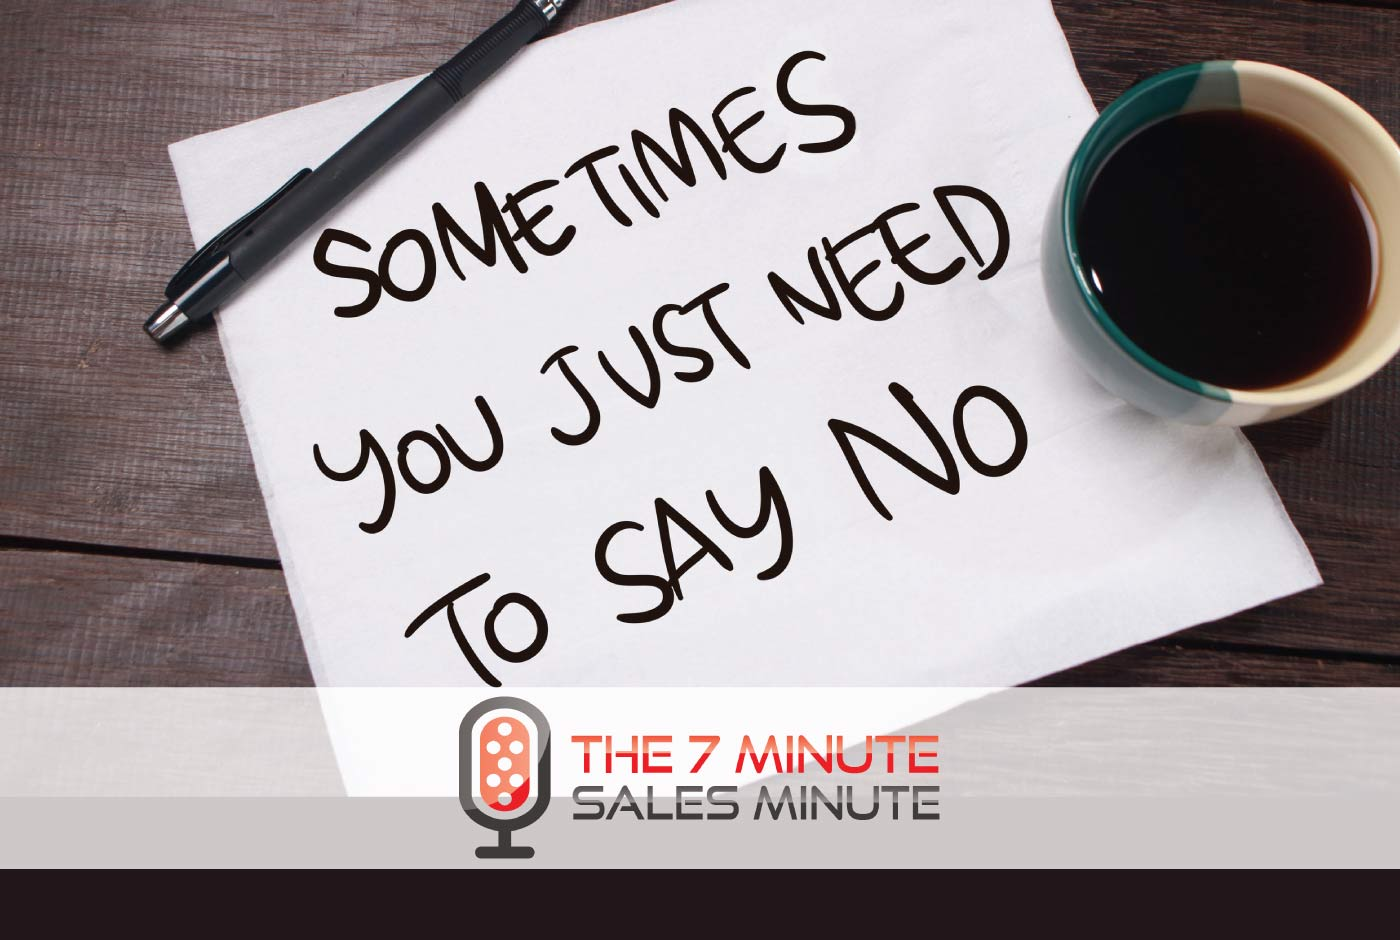 7 Minute Sales Minute Podcast: Season 13 - Episode 22 - It's OK To Say No